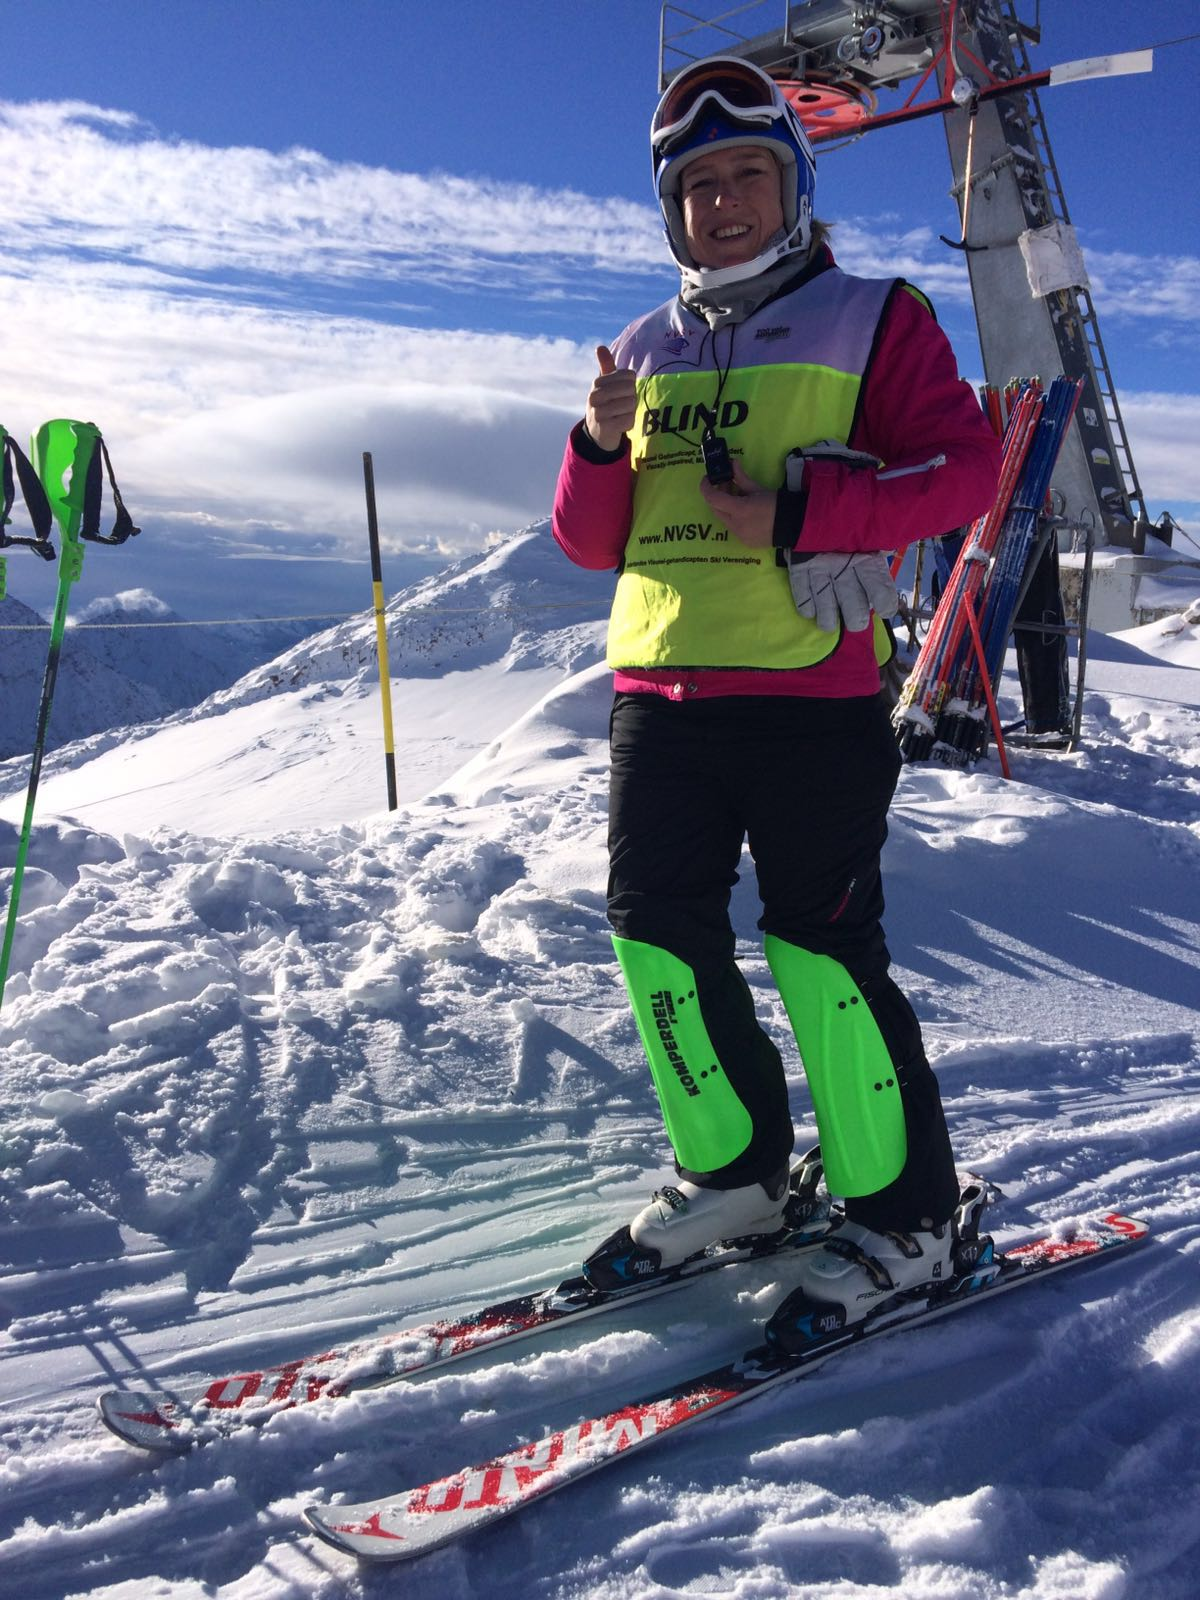 /wireless-communication-system-skiing-visual-disabled-nvsv-piste-axiwi